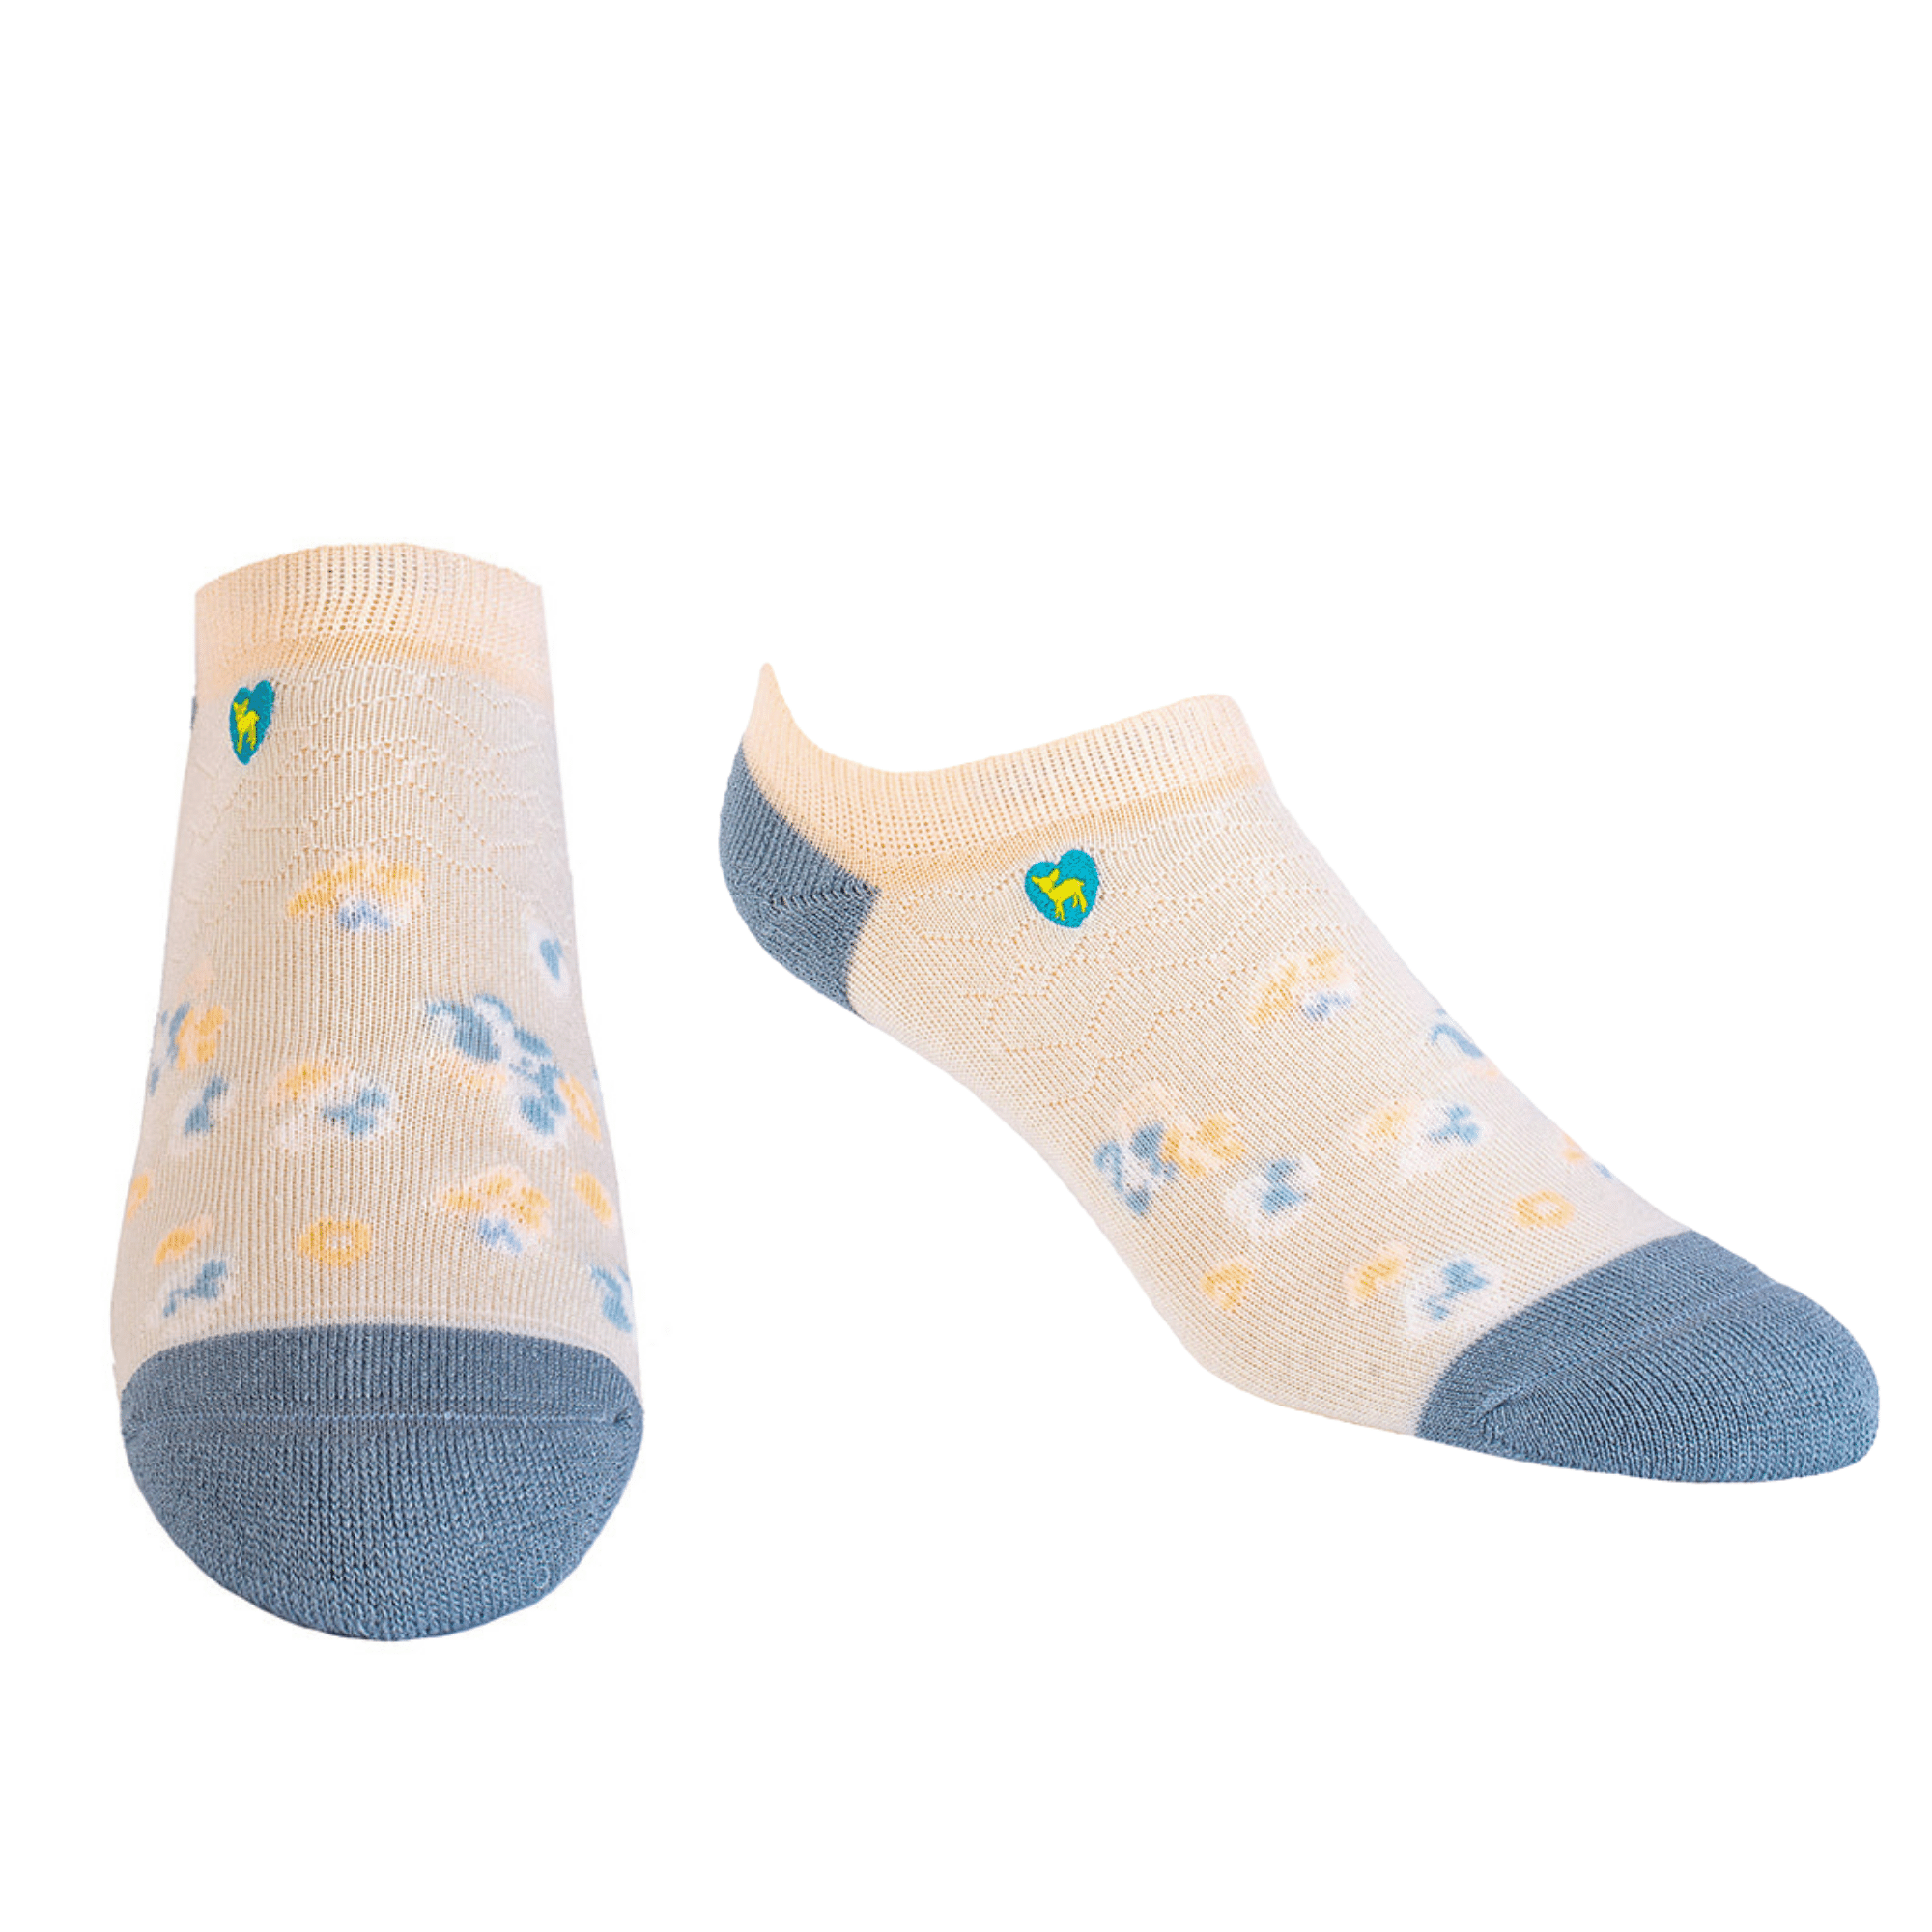 Bamboo Socks | Everyday Ankle | Spring Blossom Blue